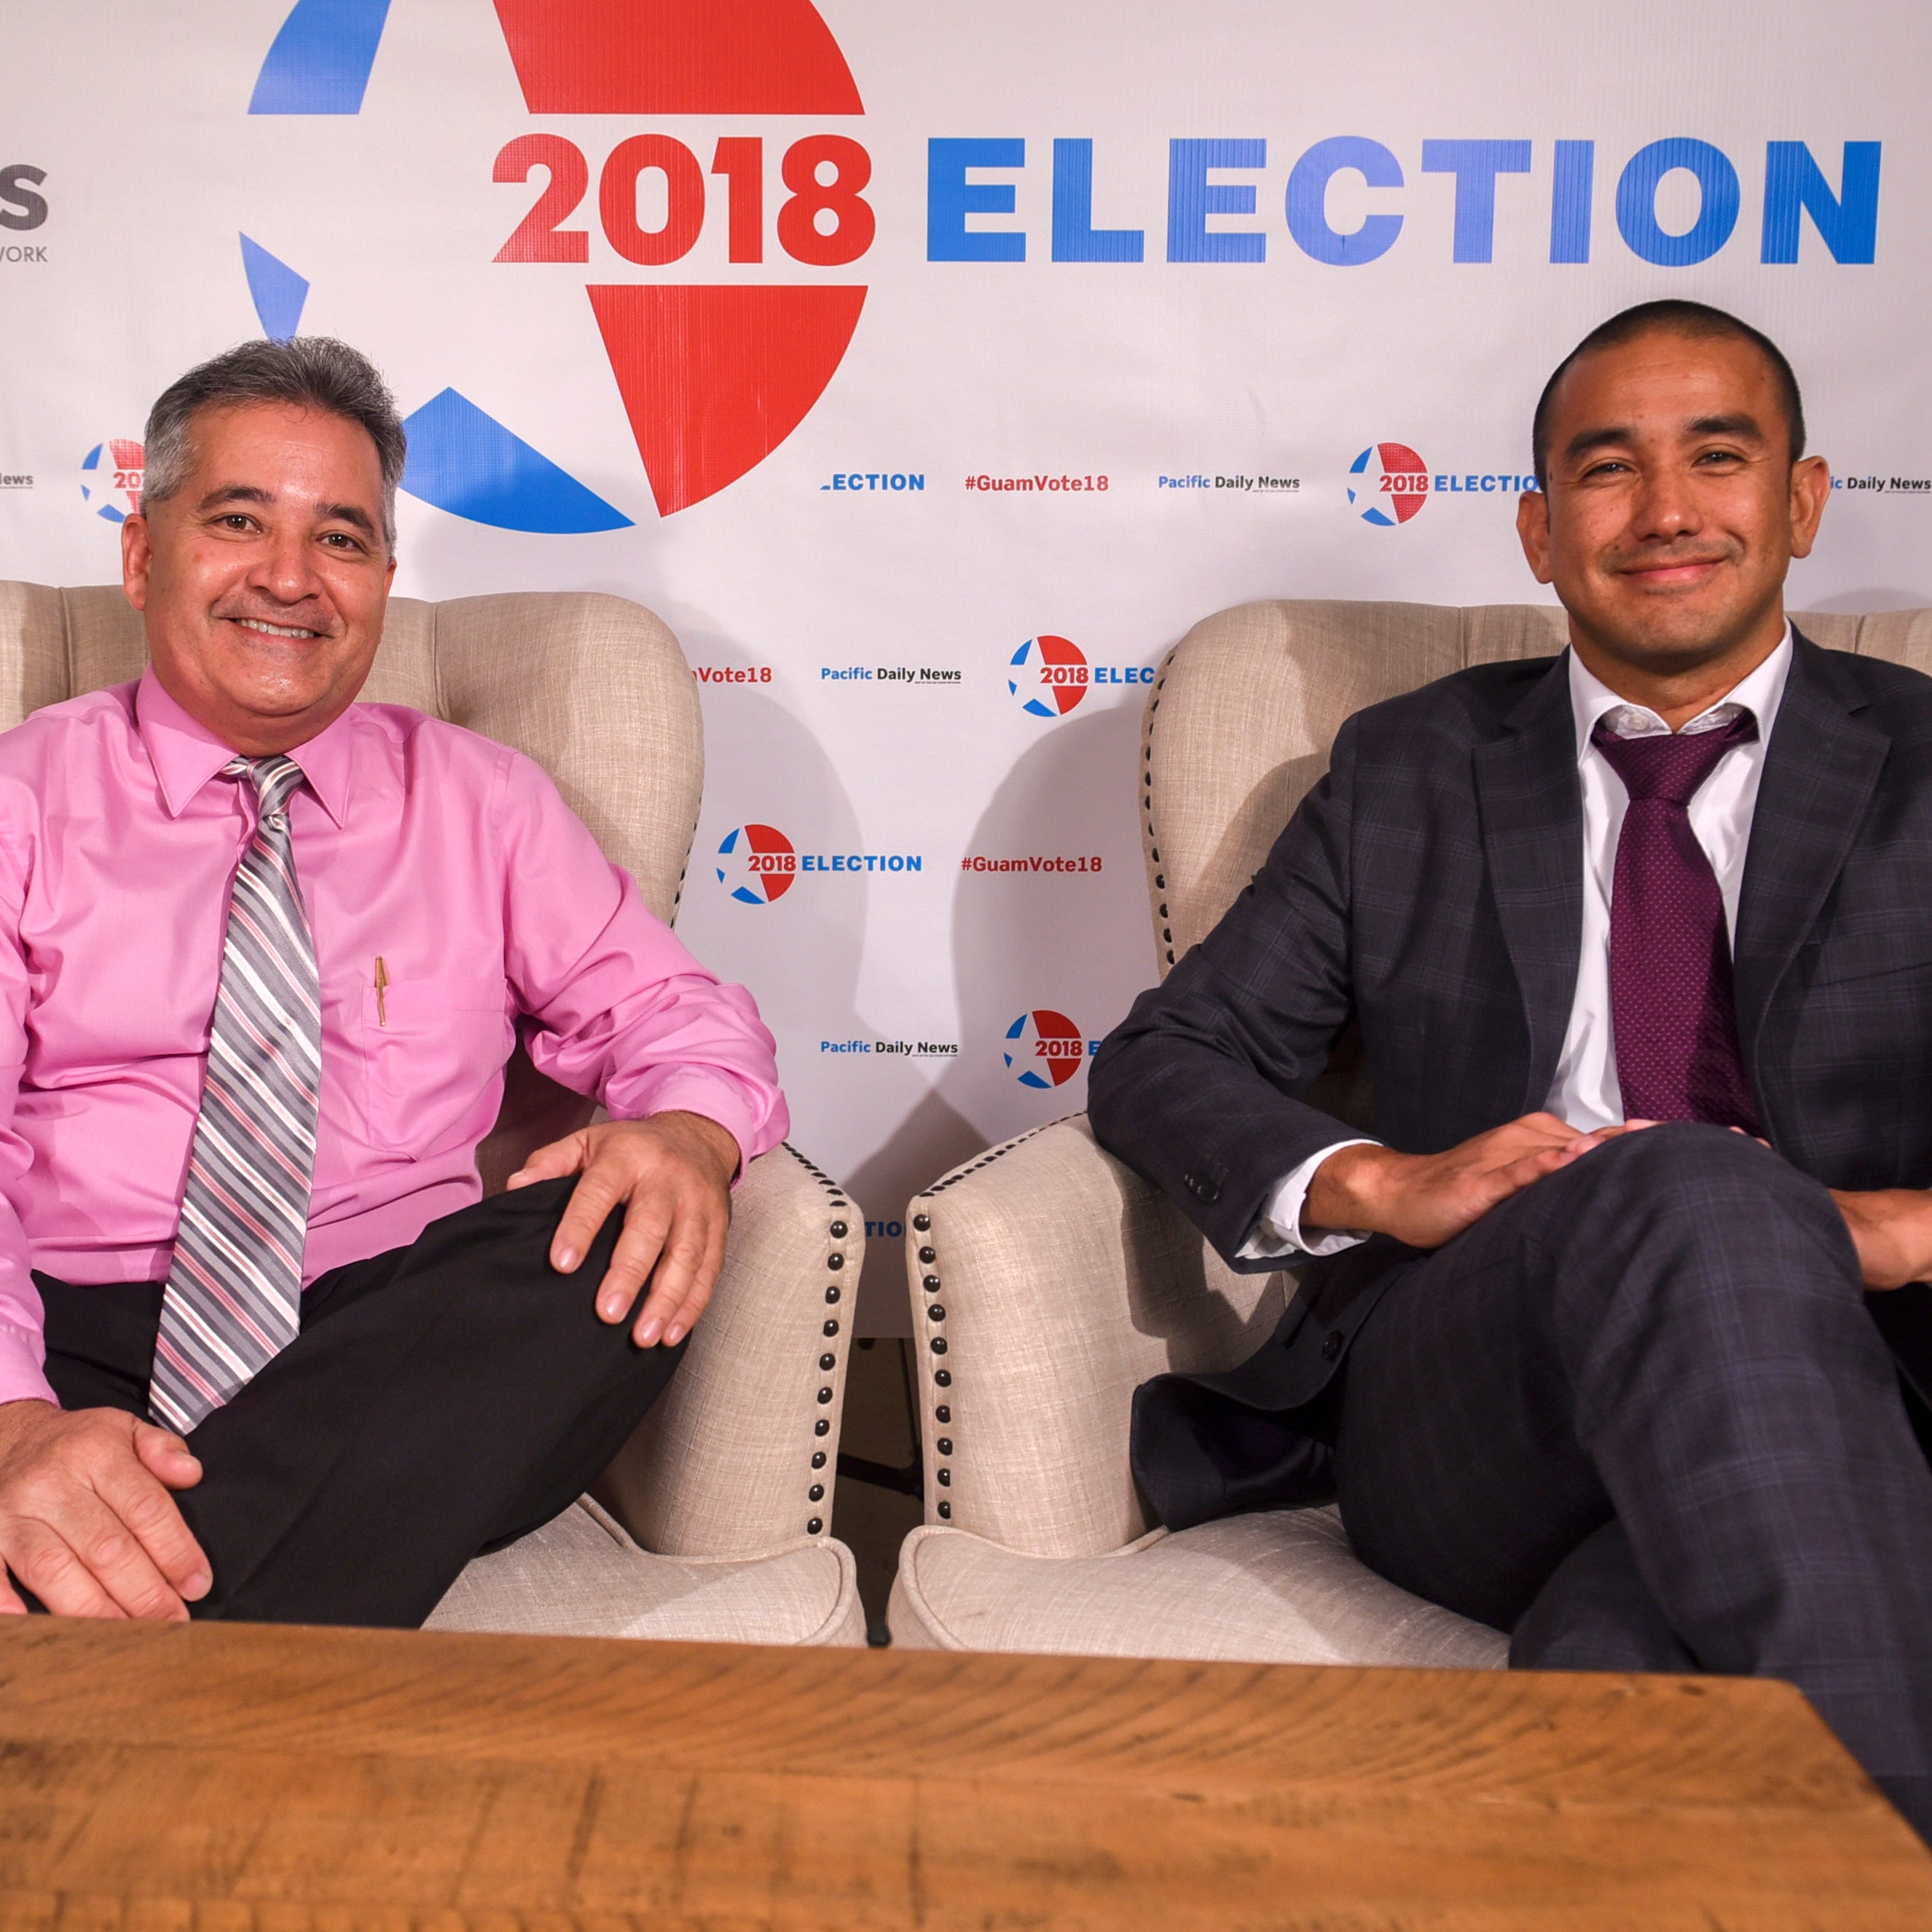 Leevin Camacho, Douglas Moylan on child support in 'Convos with the Candidates'